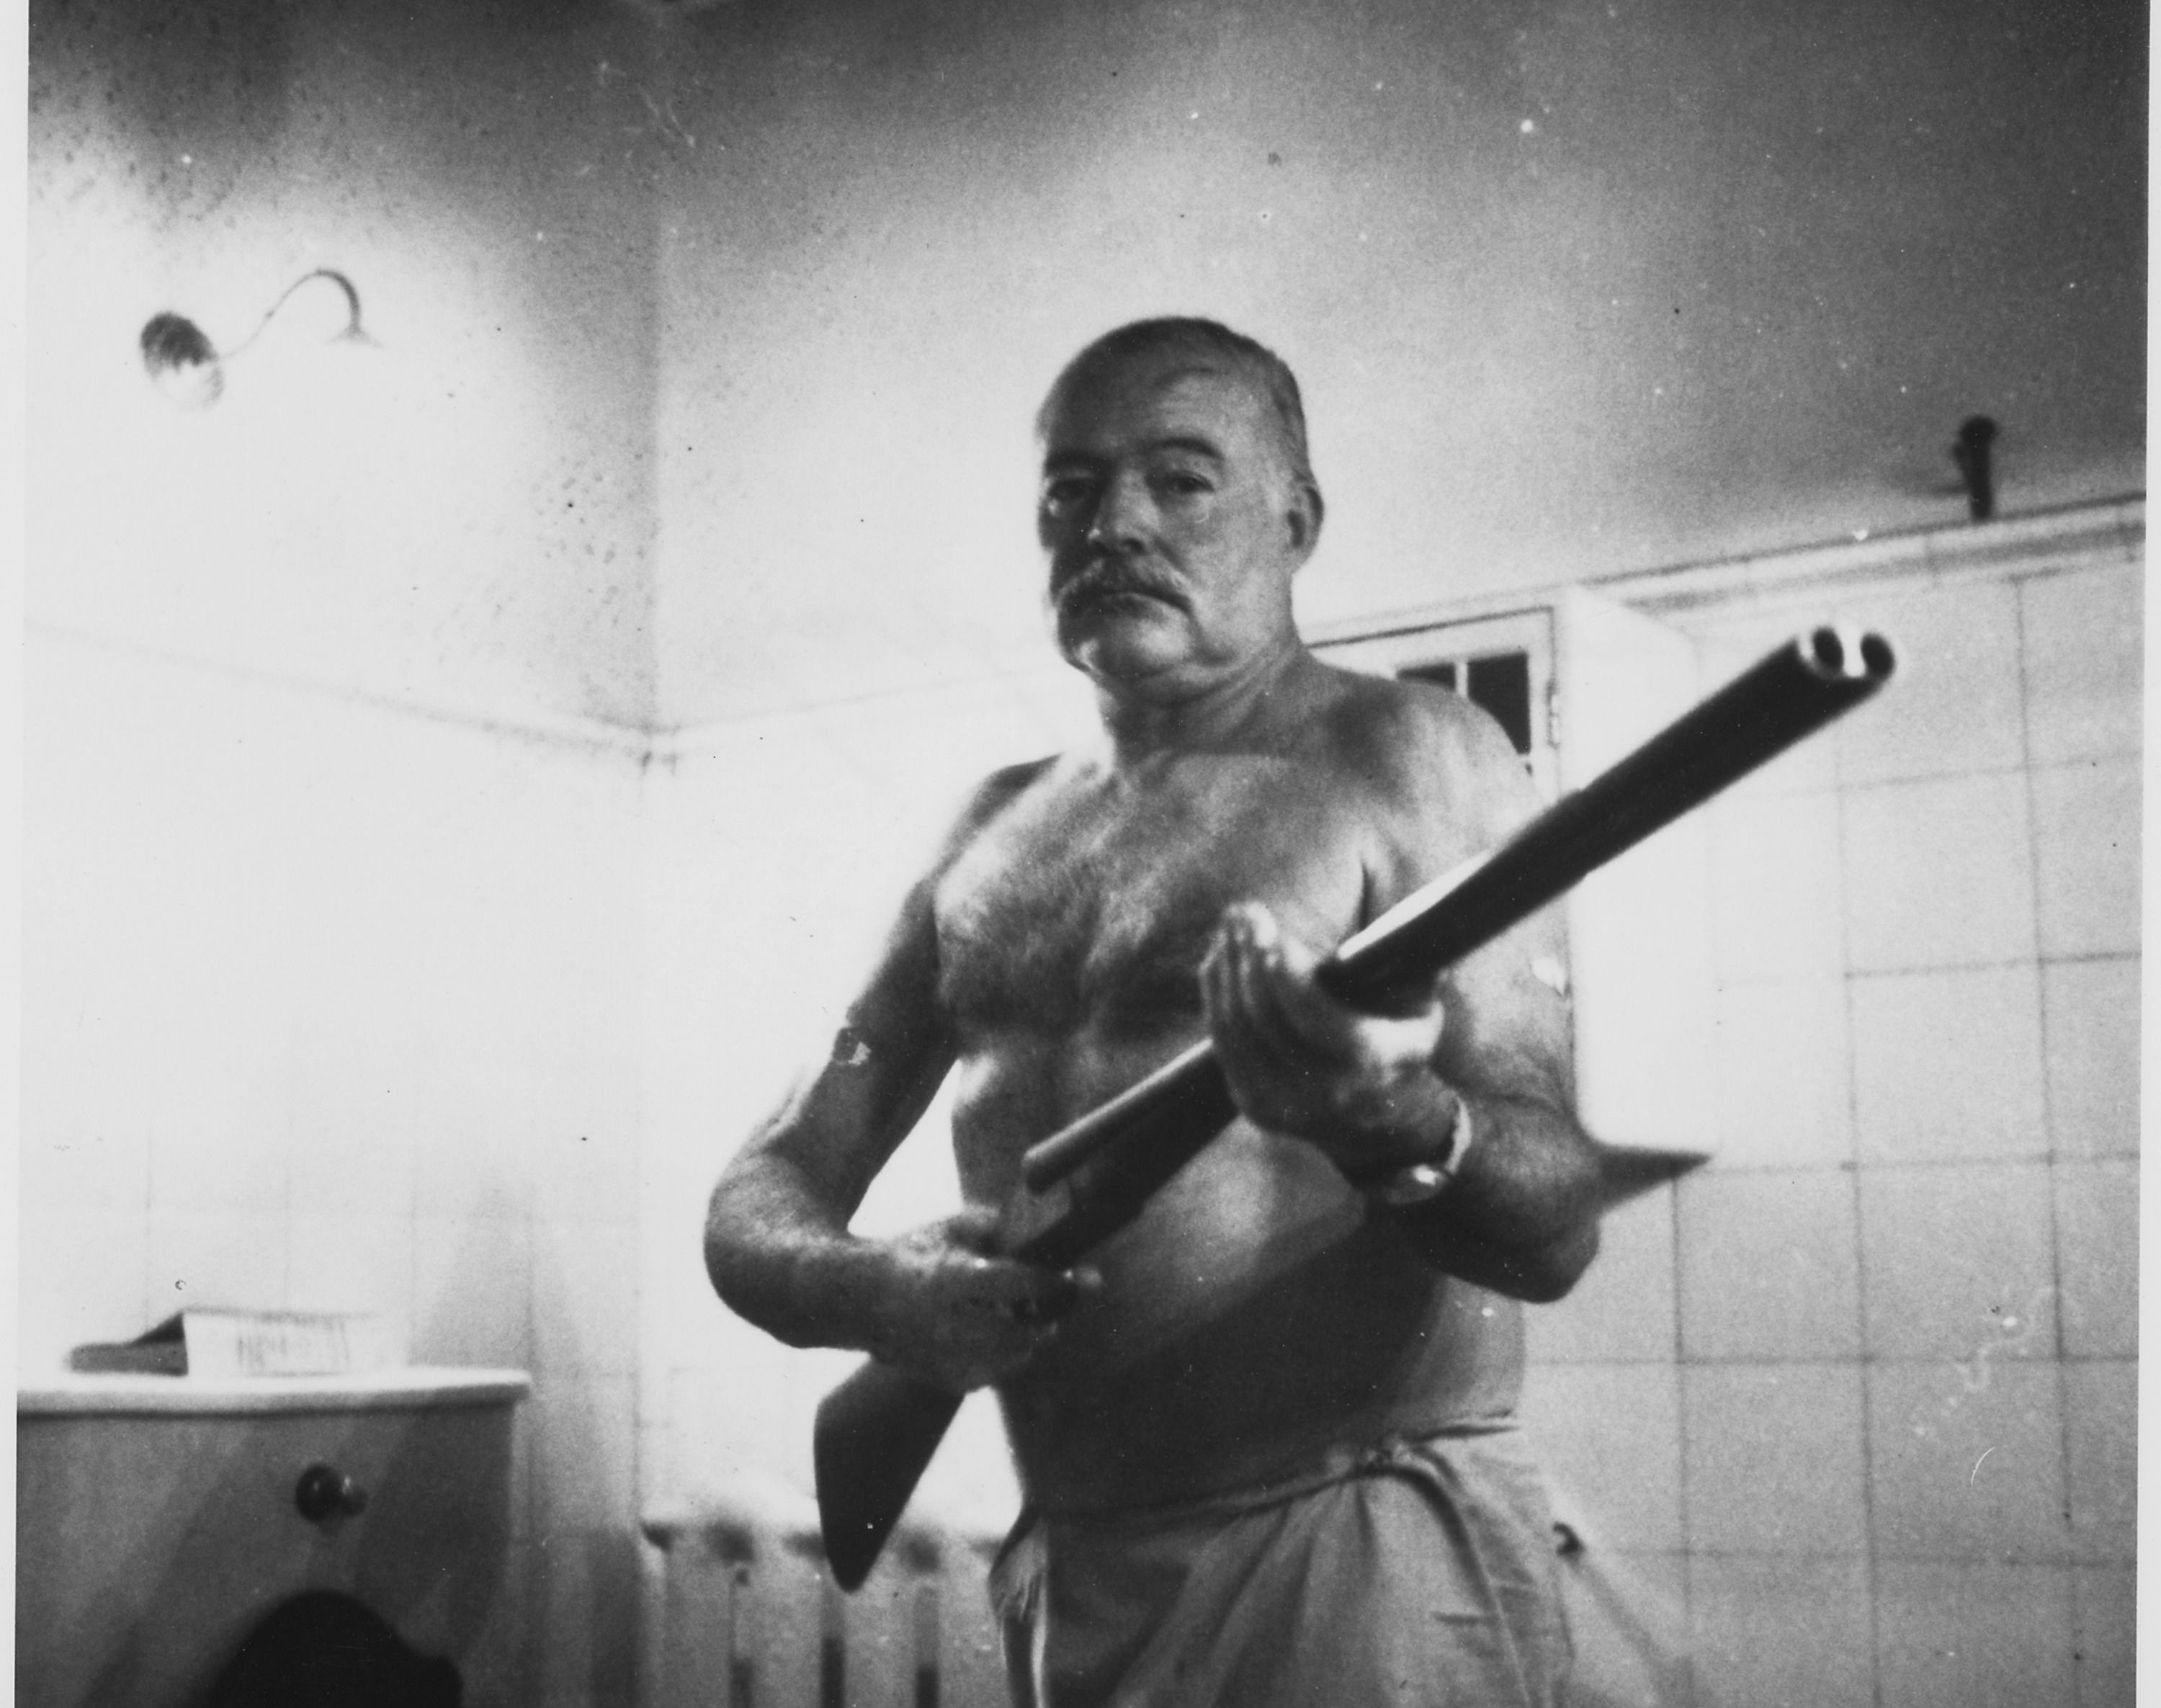 Ernest Hemingway with his Shotgun